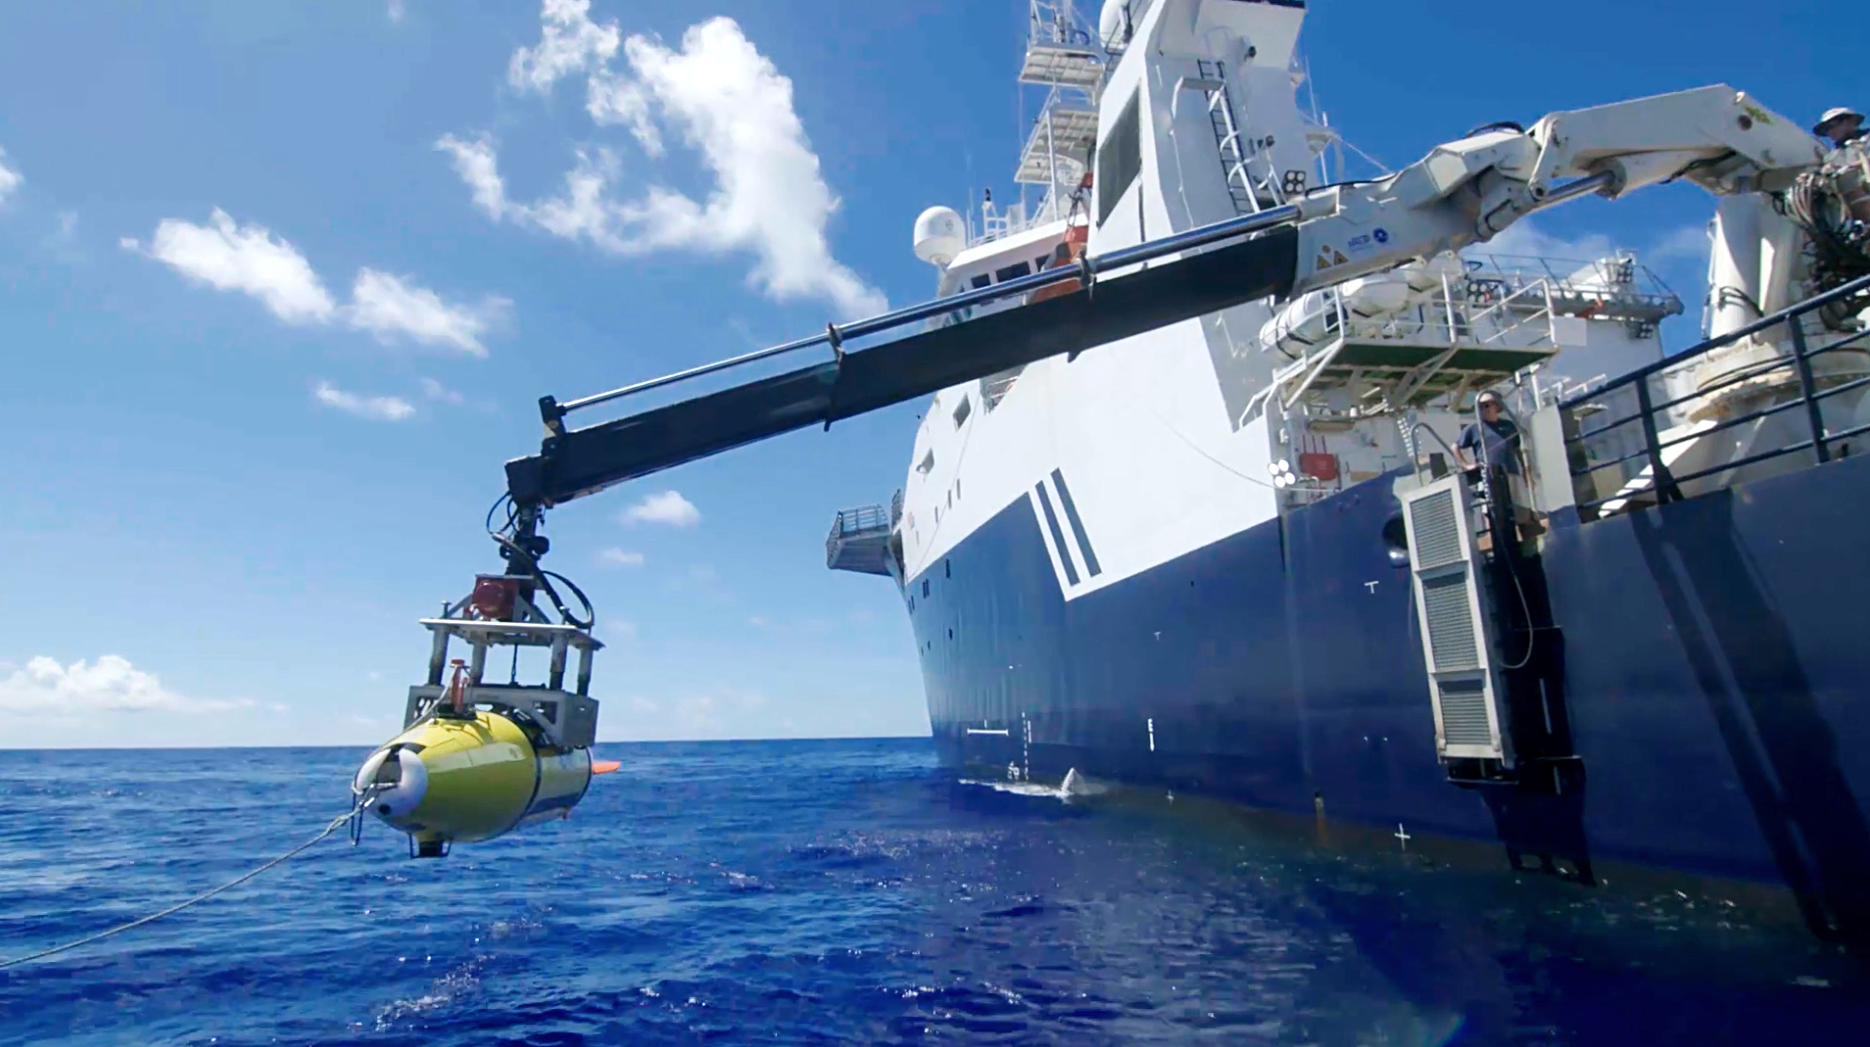 The AUV is lowered into the Philippine Sea in search of the USS Indianapolis. Photo courtesy of Paul G. Allen.